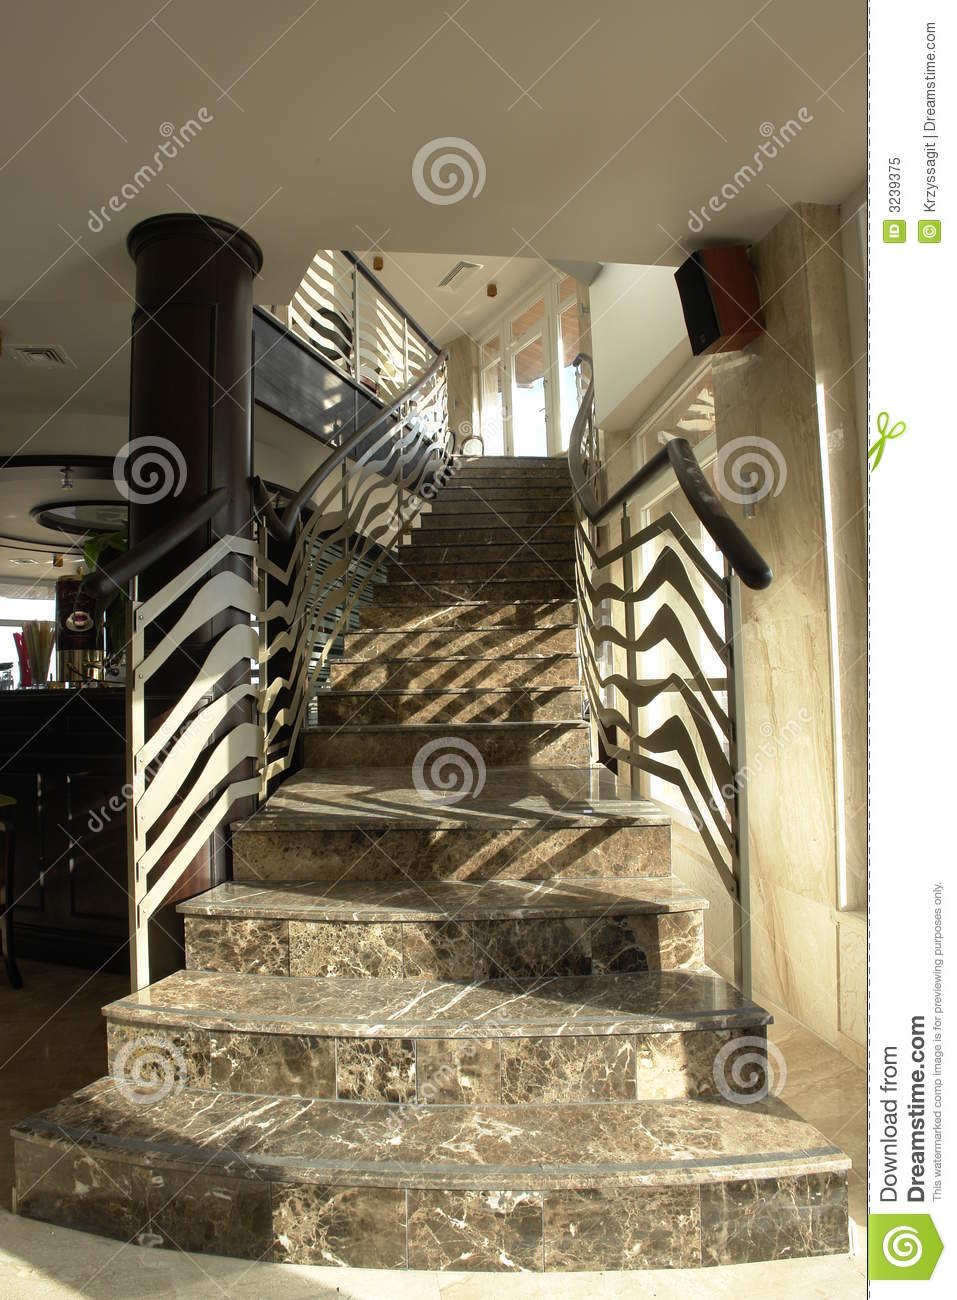 descending staircase with rail stock photo. Black Bedroom Furniture Sets. Home Design Ideas